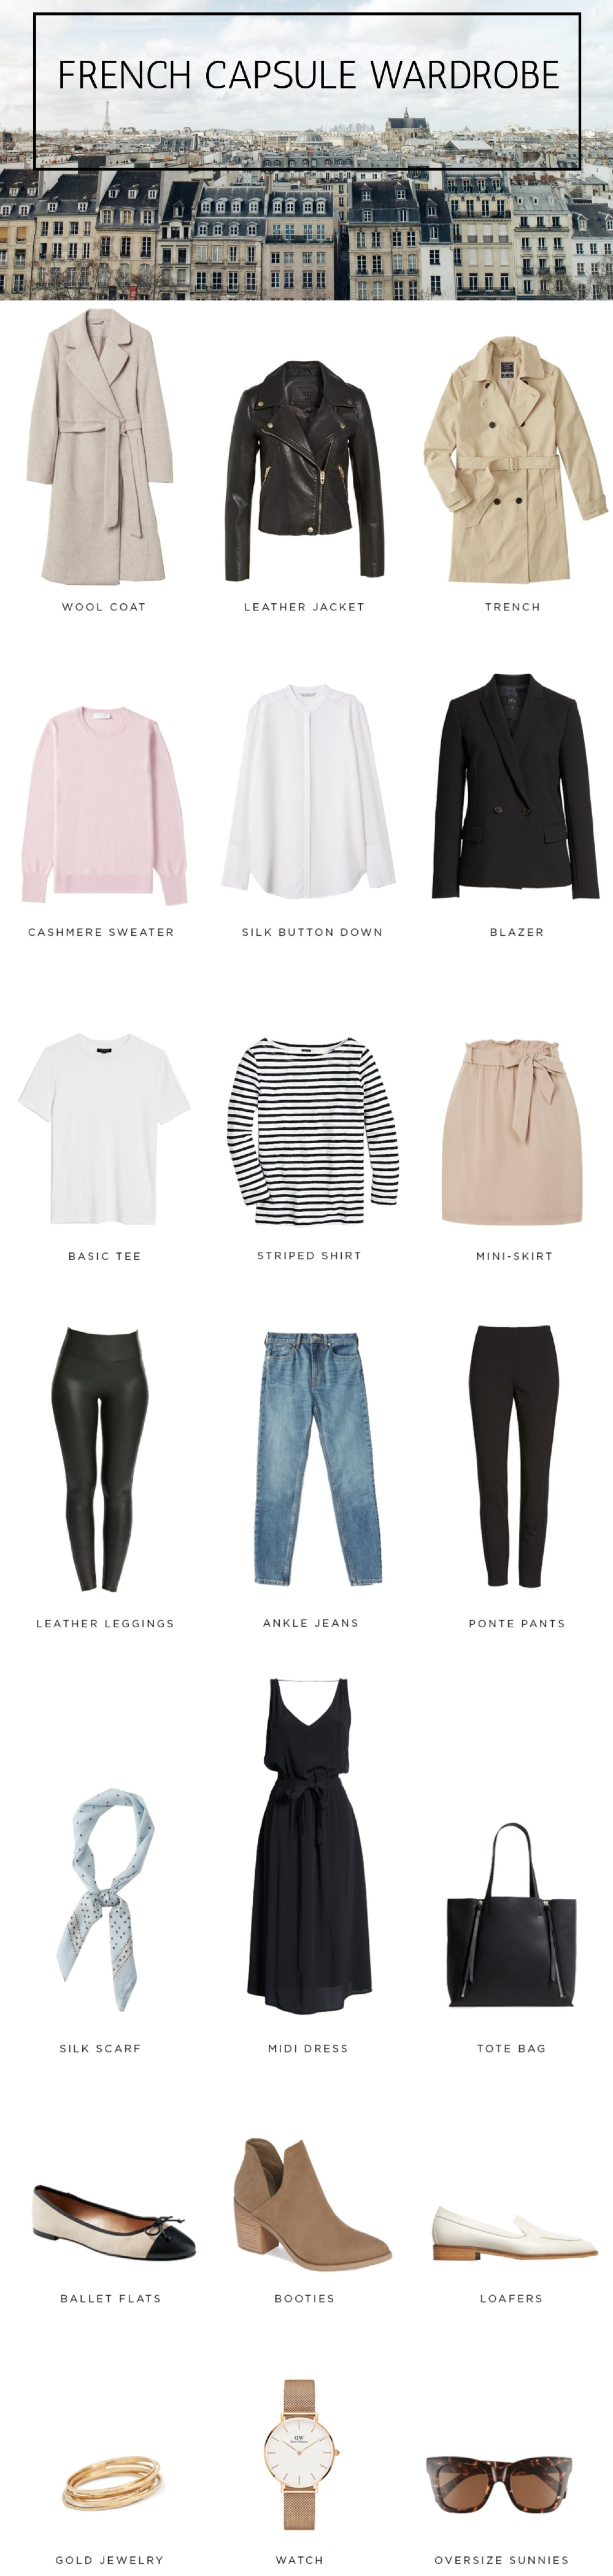 FRENCH CAPSULE WARDROBE